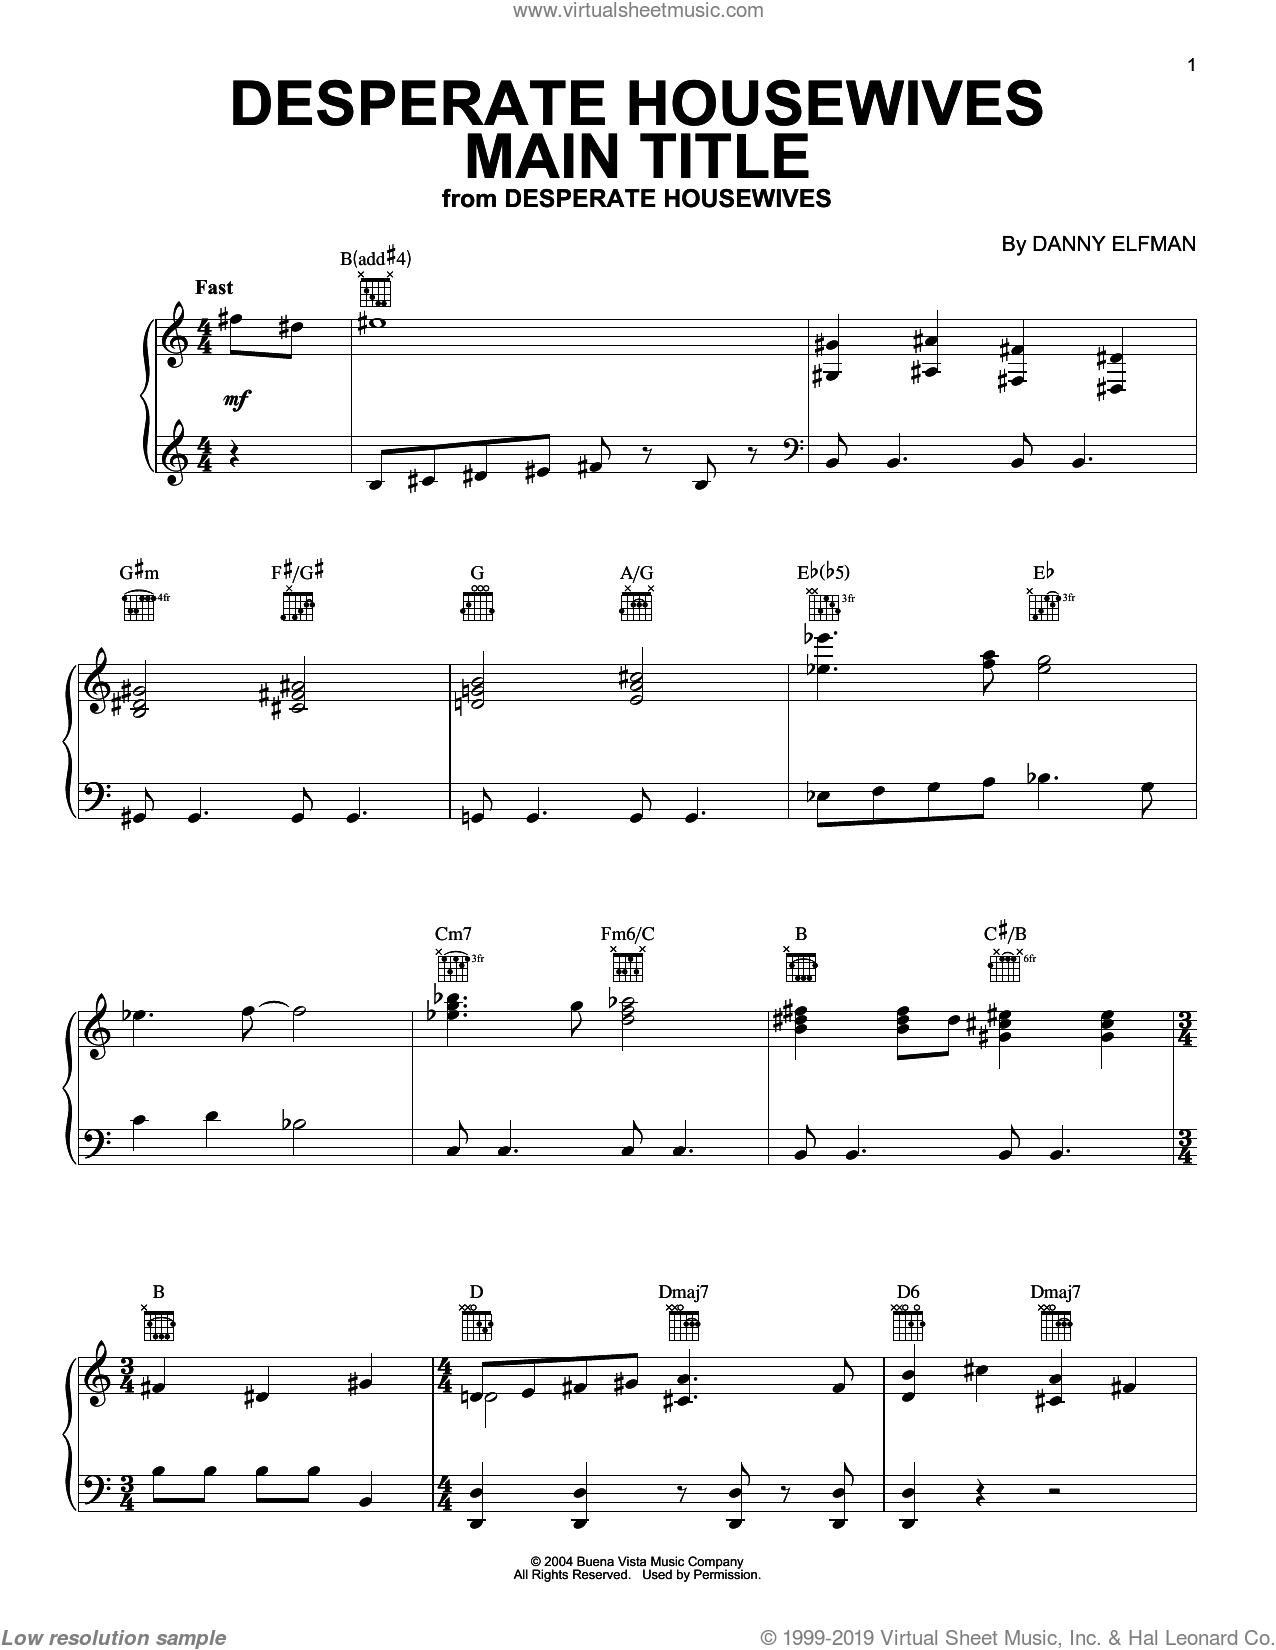 Desperate Housewives Main Title sheet music for piano solo by Danny Elfman. Score Image Preview.